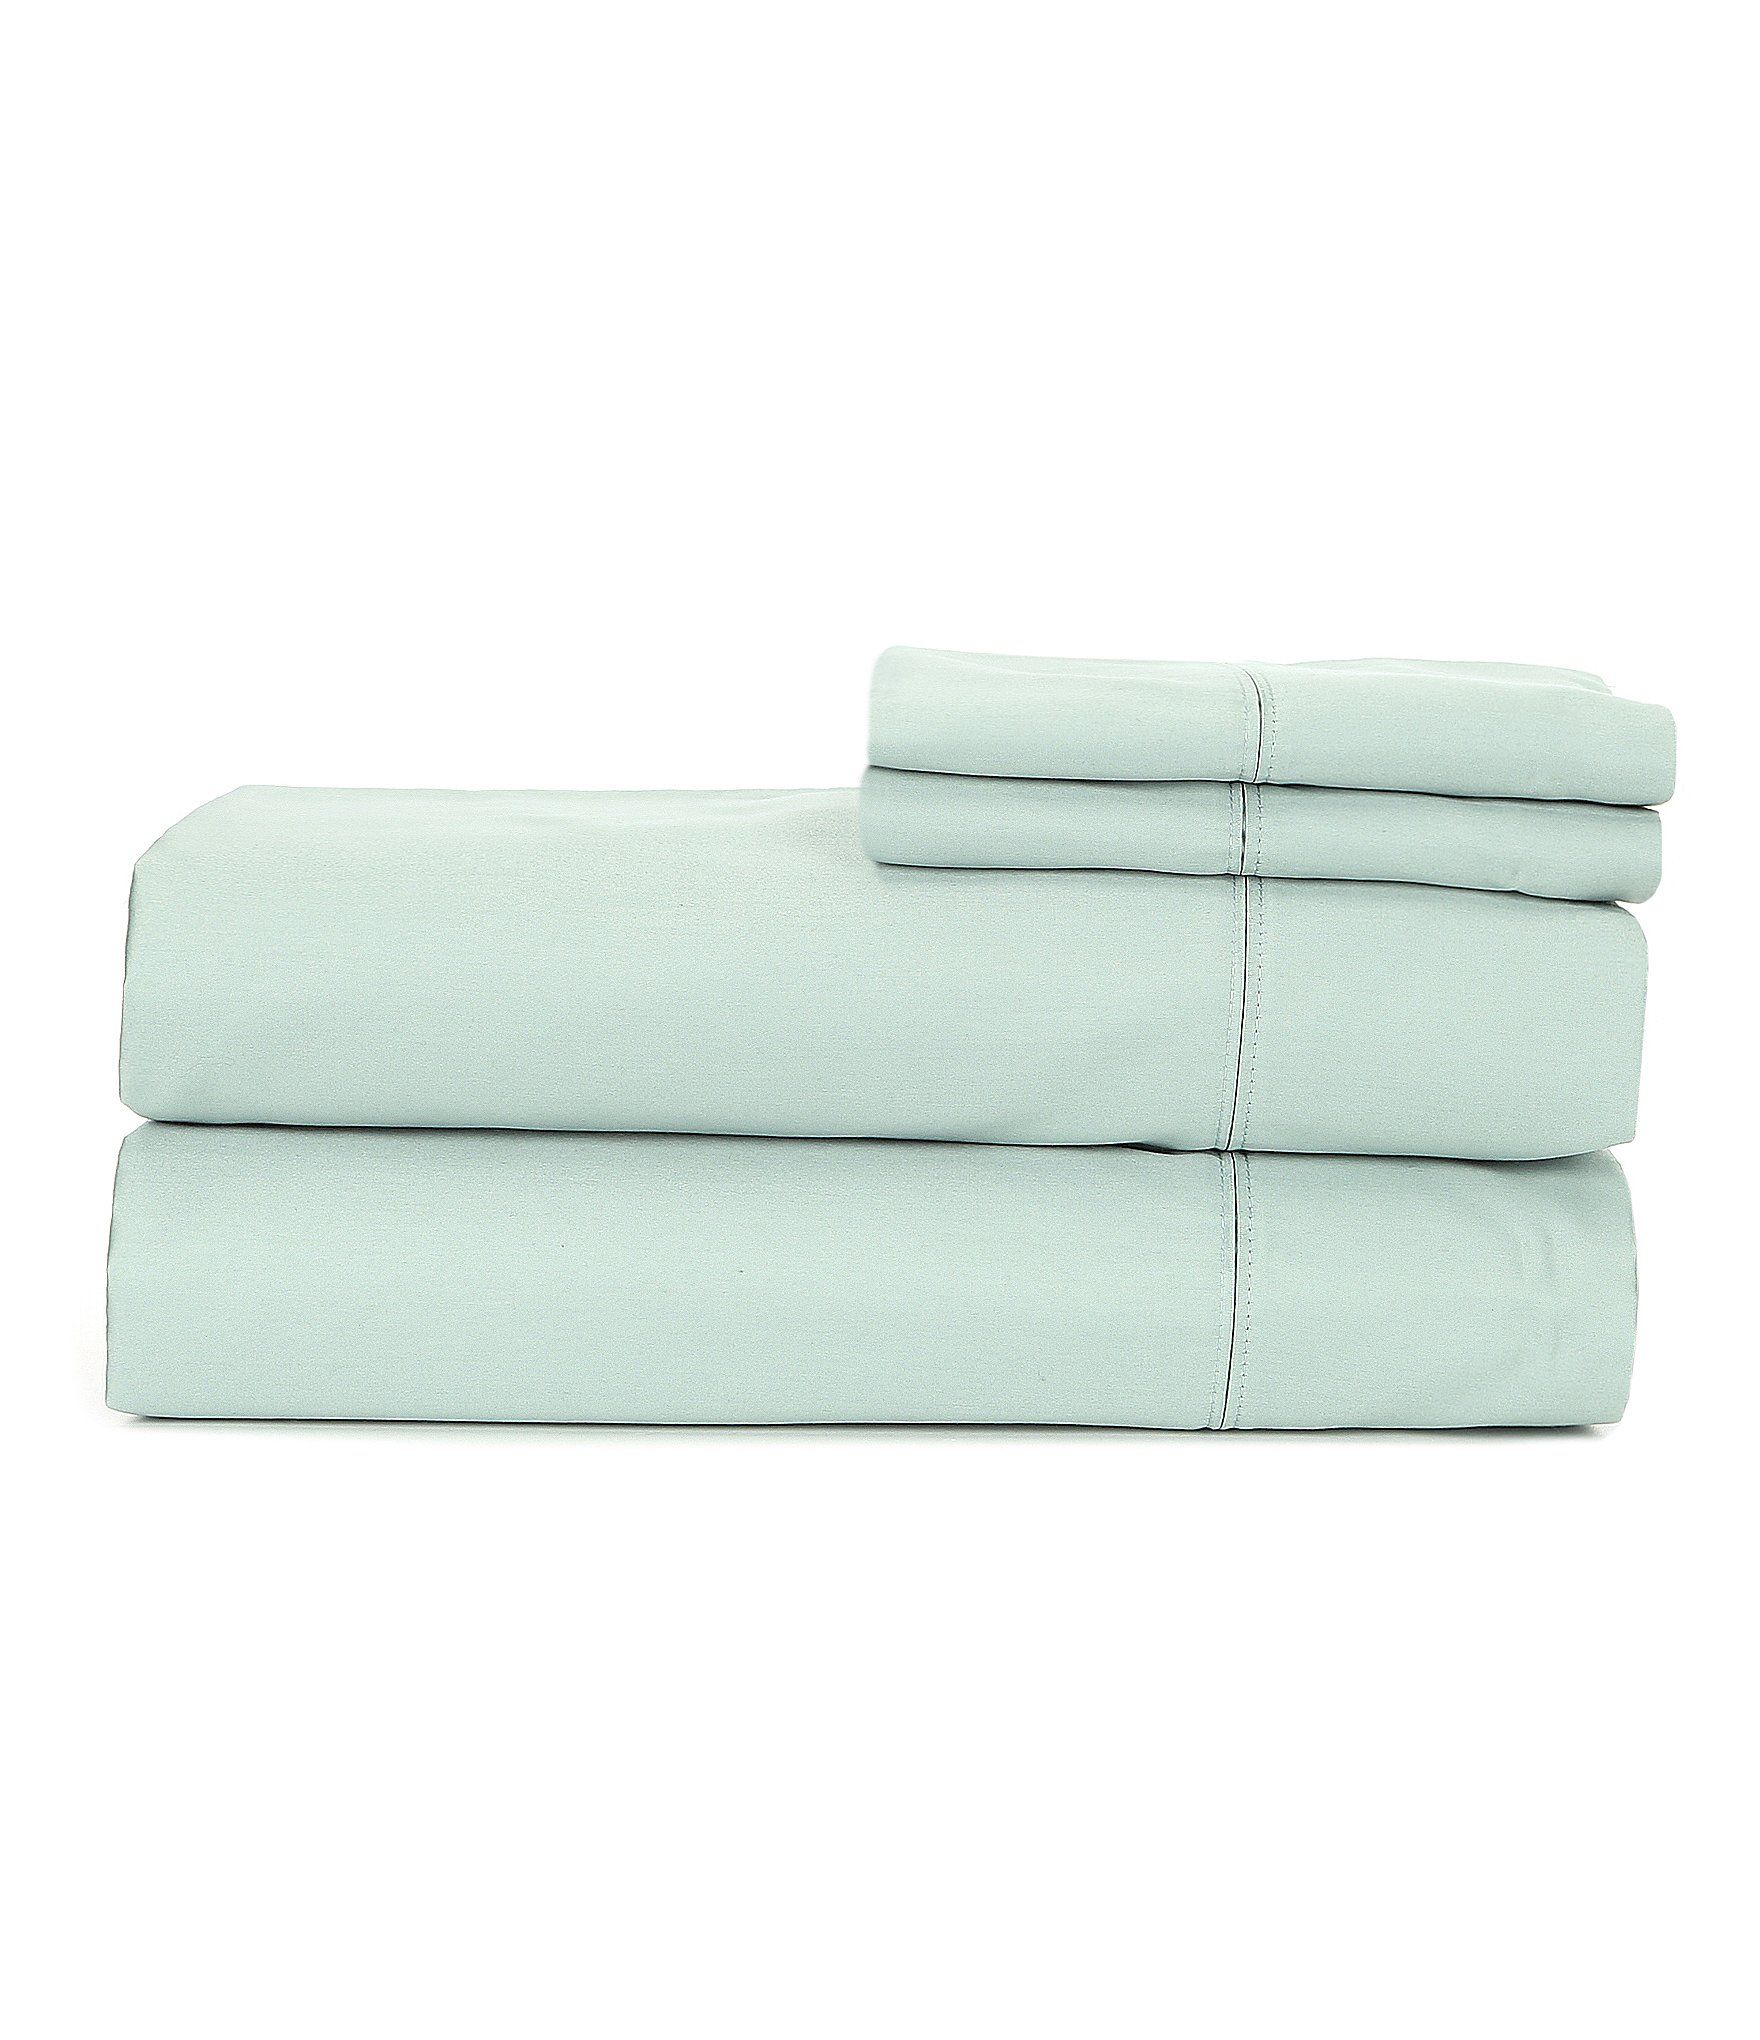 Noble Excellence 500 Thread Count Deep Pocket Egyptian Cotton Sheet Set Dillard S In 2020 King Sheet Sets Cotton Sheet Sets Best Sheet Sets